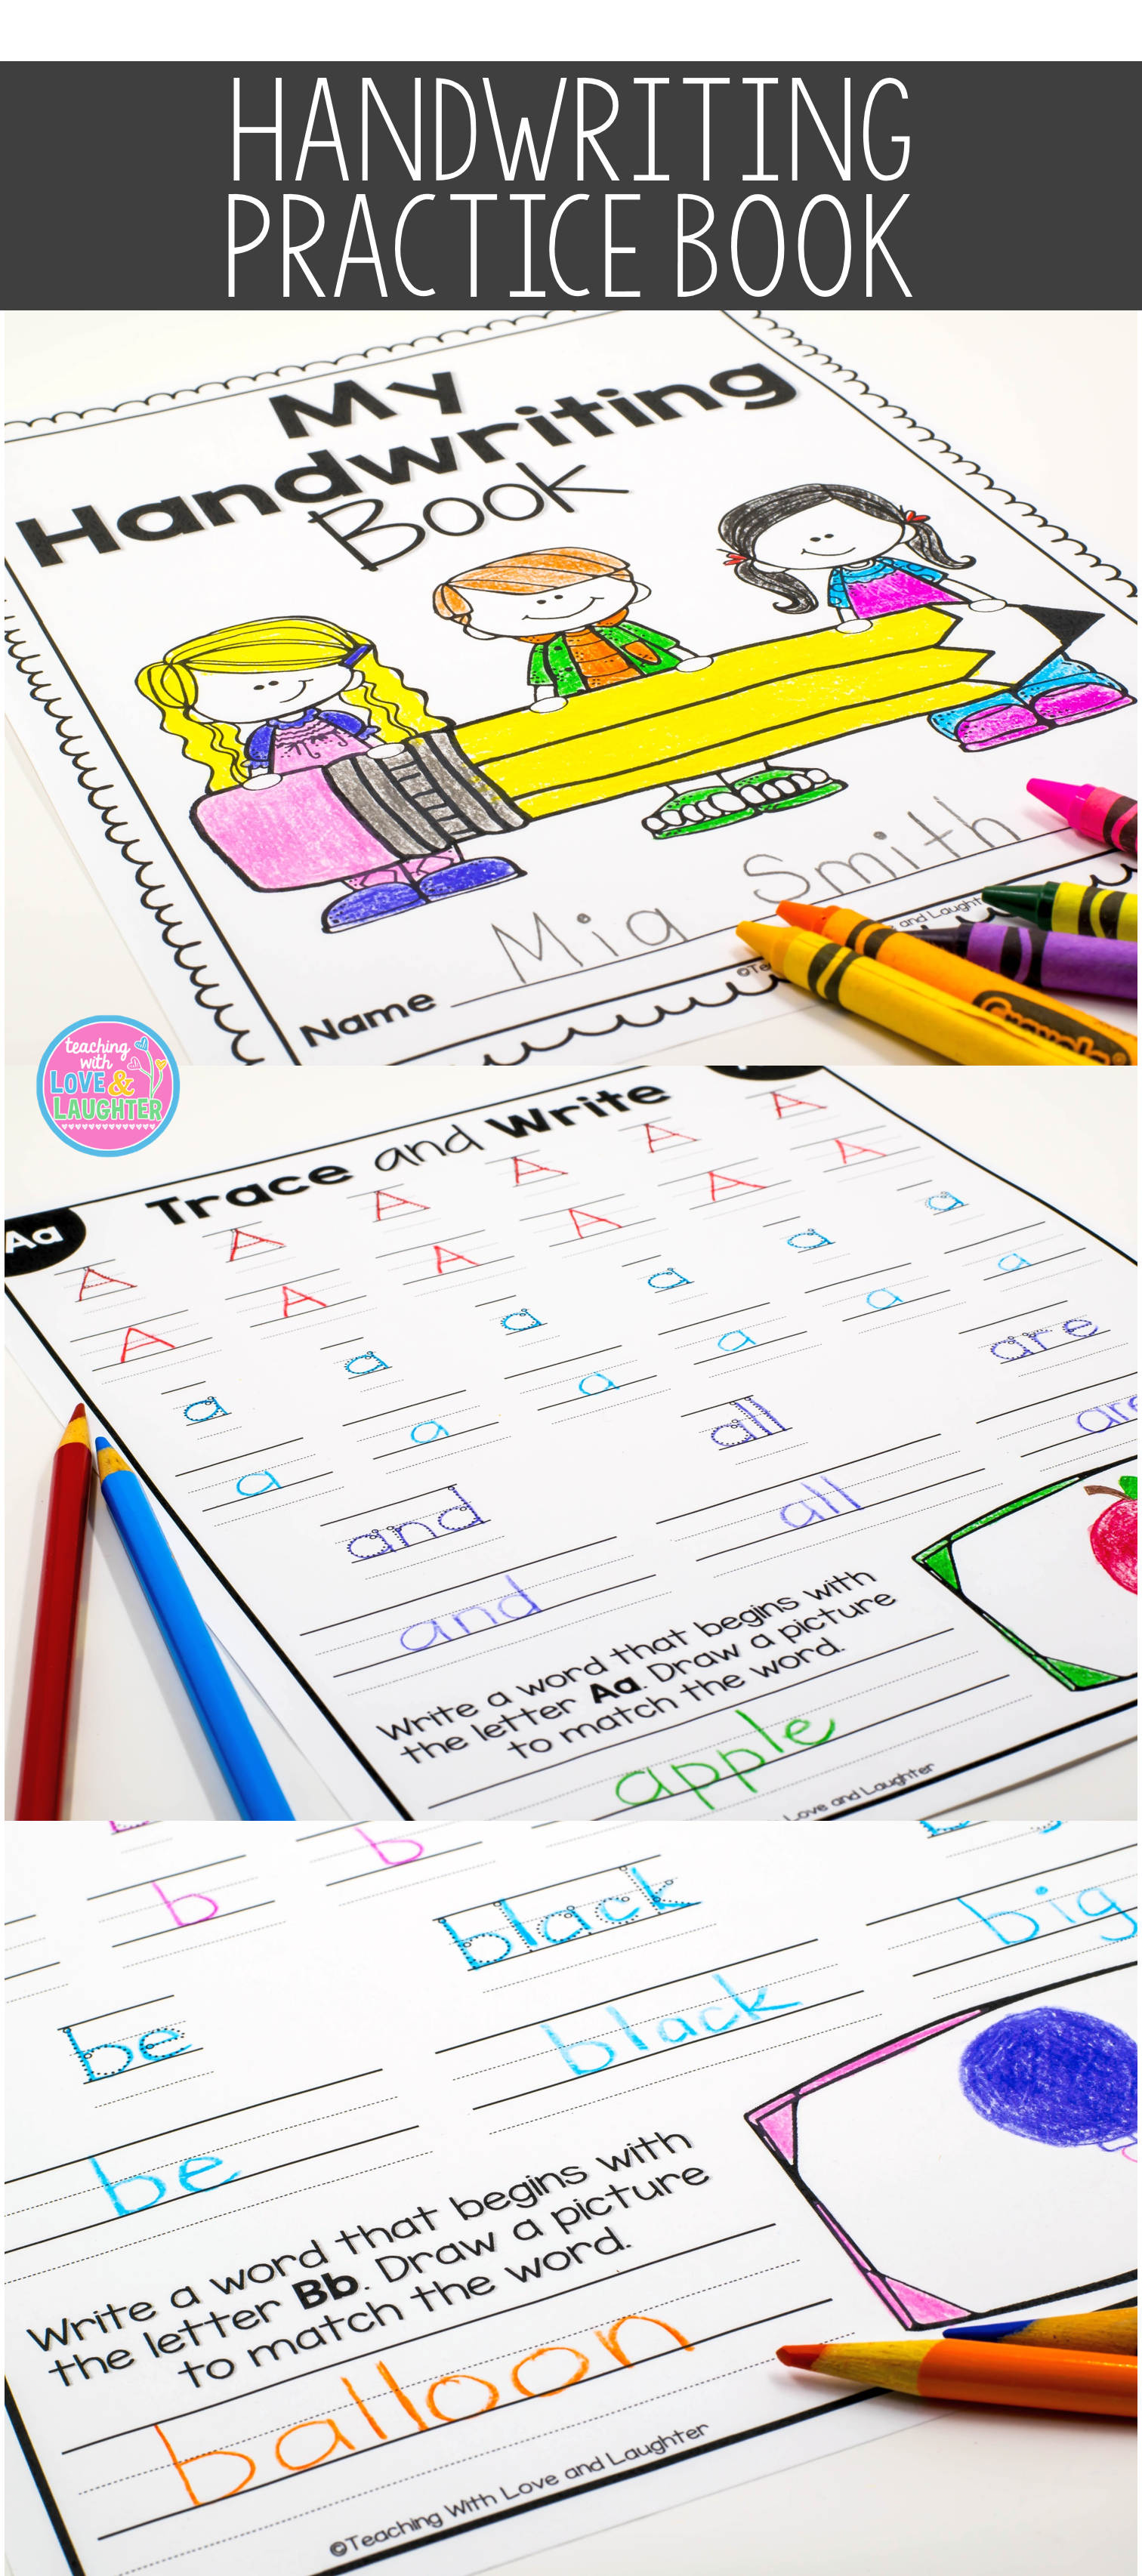 Give Your Students A Chance To Develop And Perfect Their Handwriting Skills With This Cute